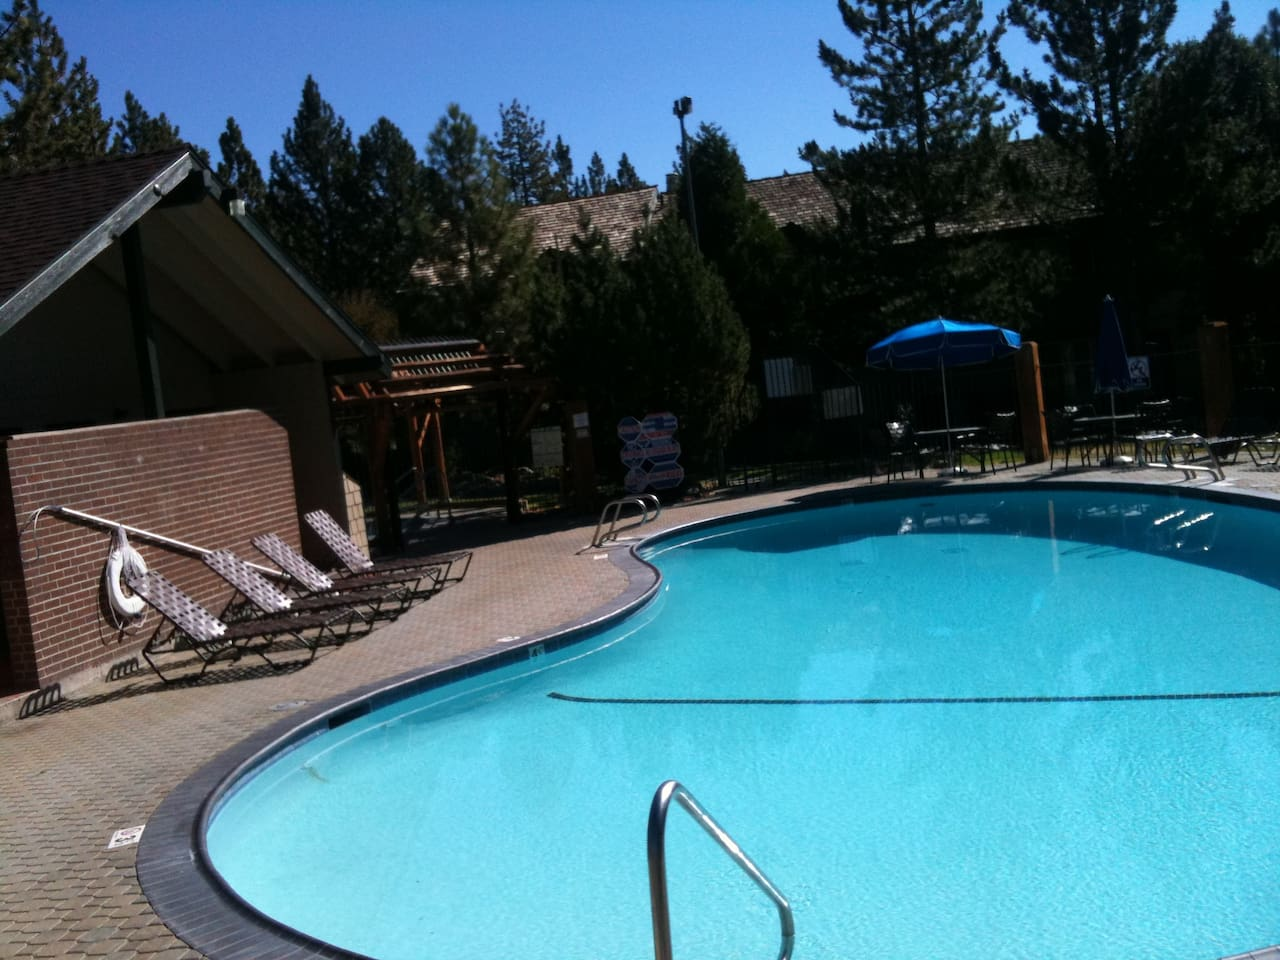 Adult pool and hottub (larger kids pool 200 feet away)